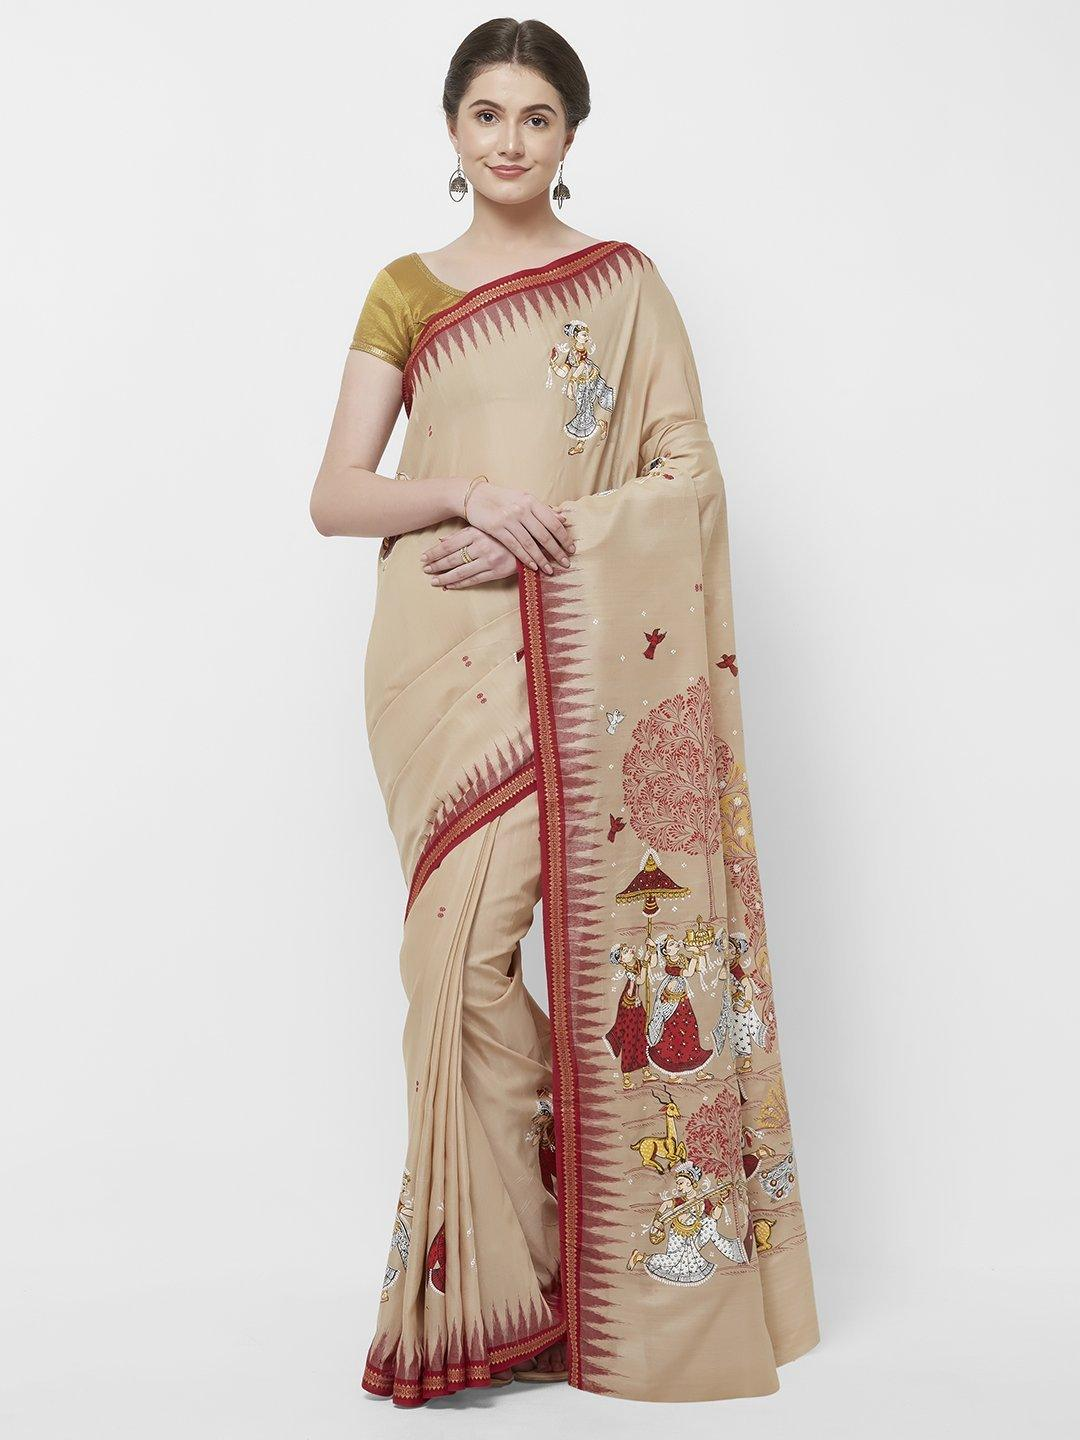 CraftsCollection.in -Odisha Sambalpuri Ikat Saree with  handpainted Pattachitra motifs